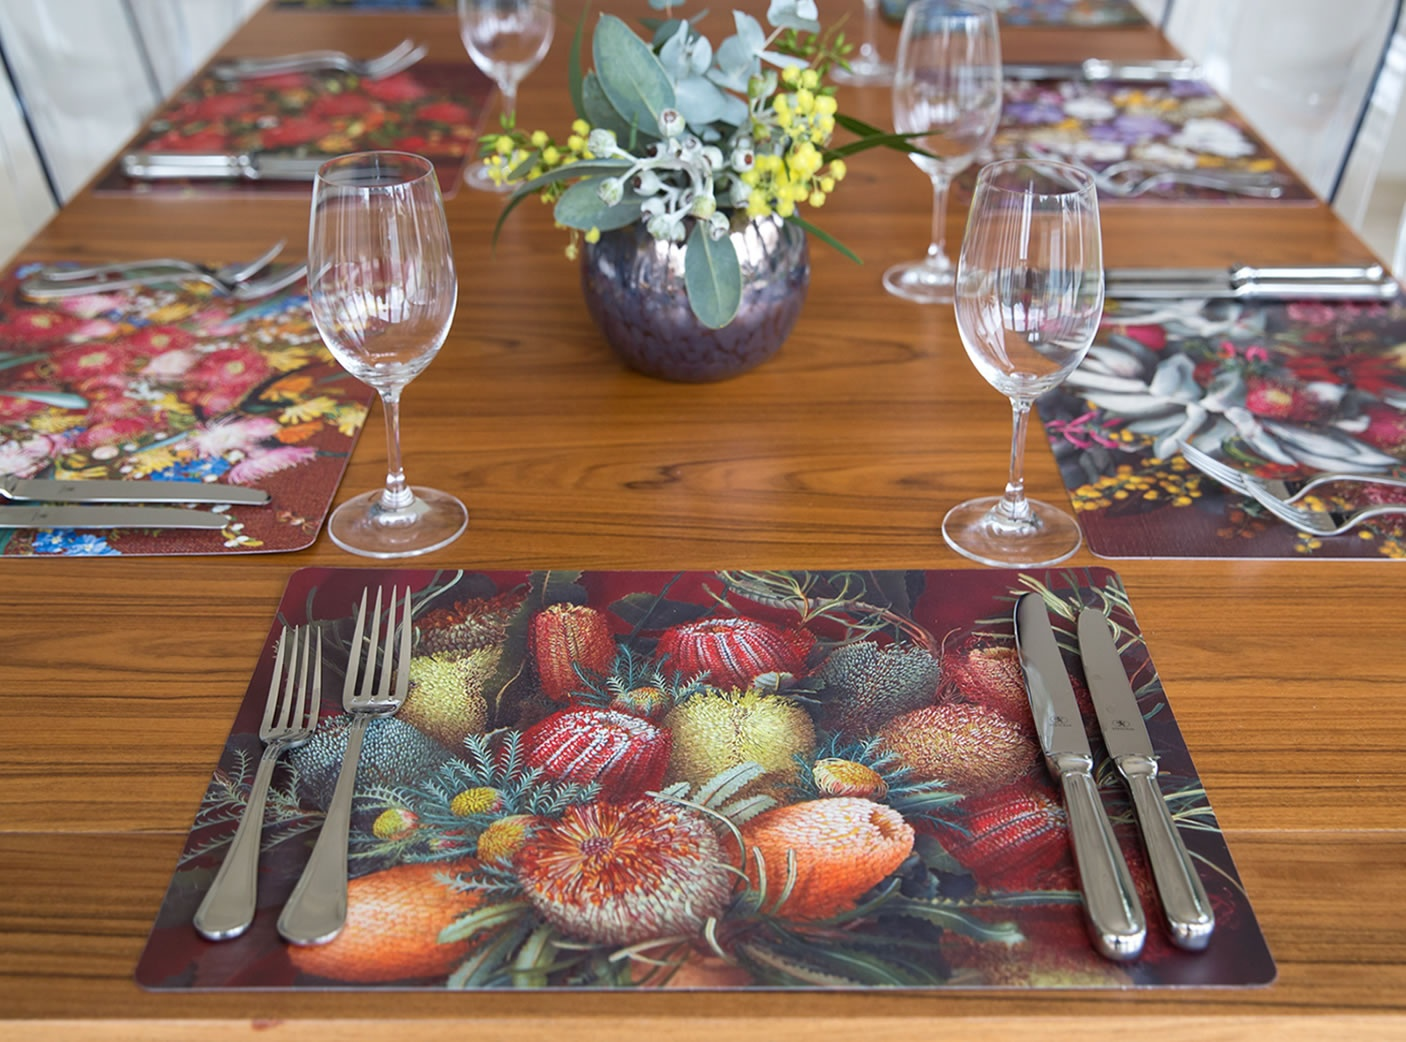 wildflowers-placemat-2